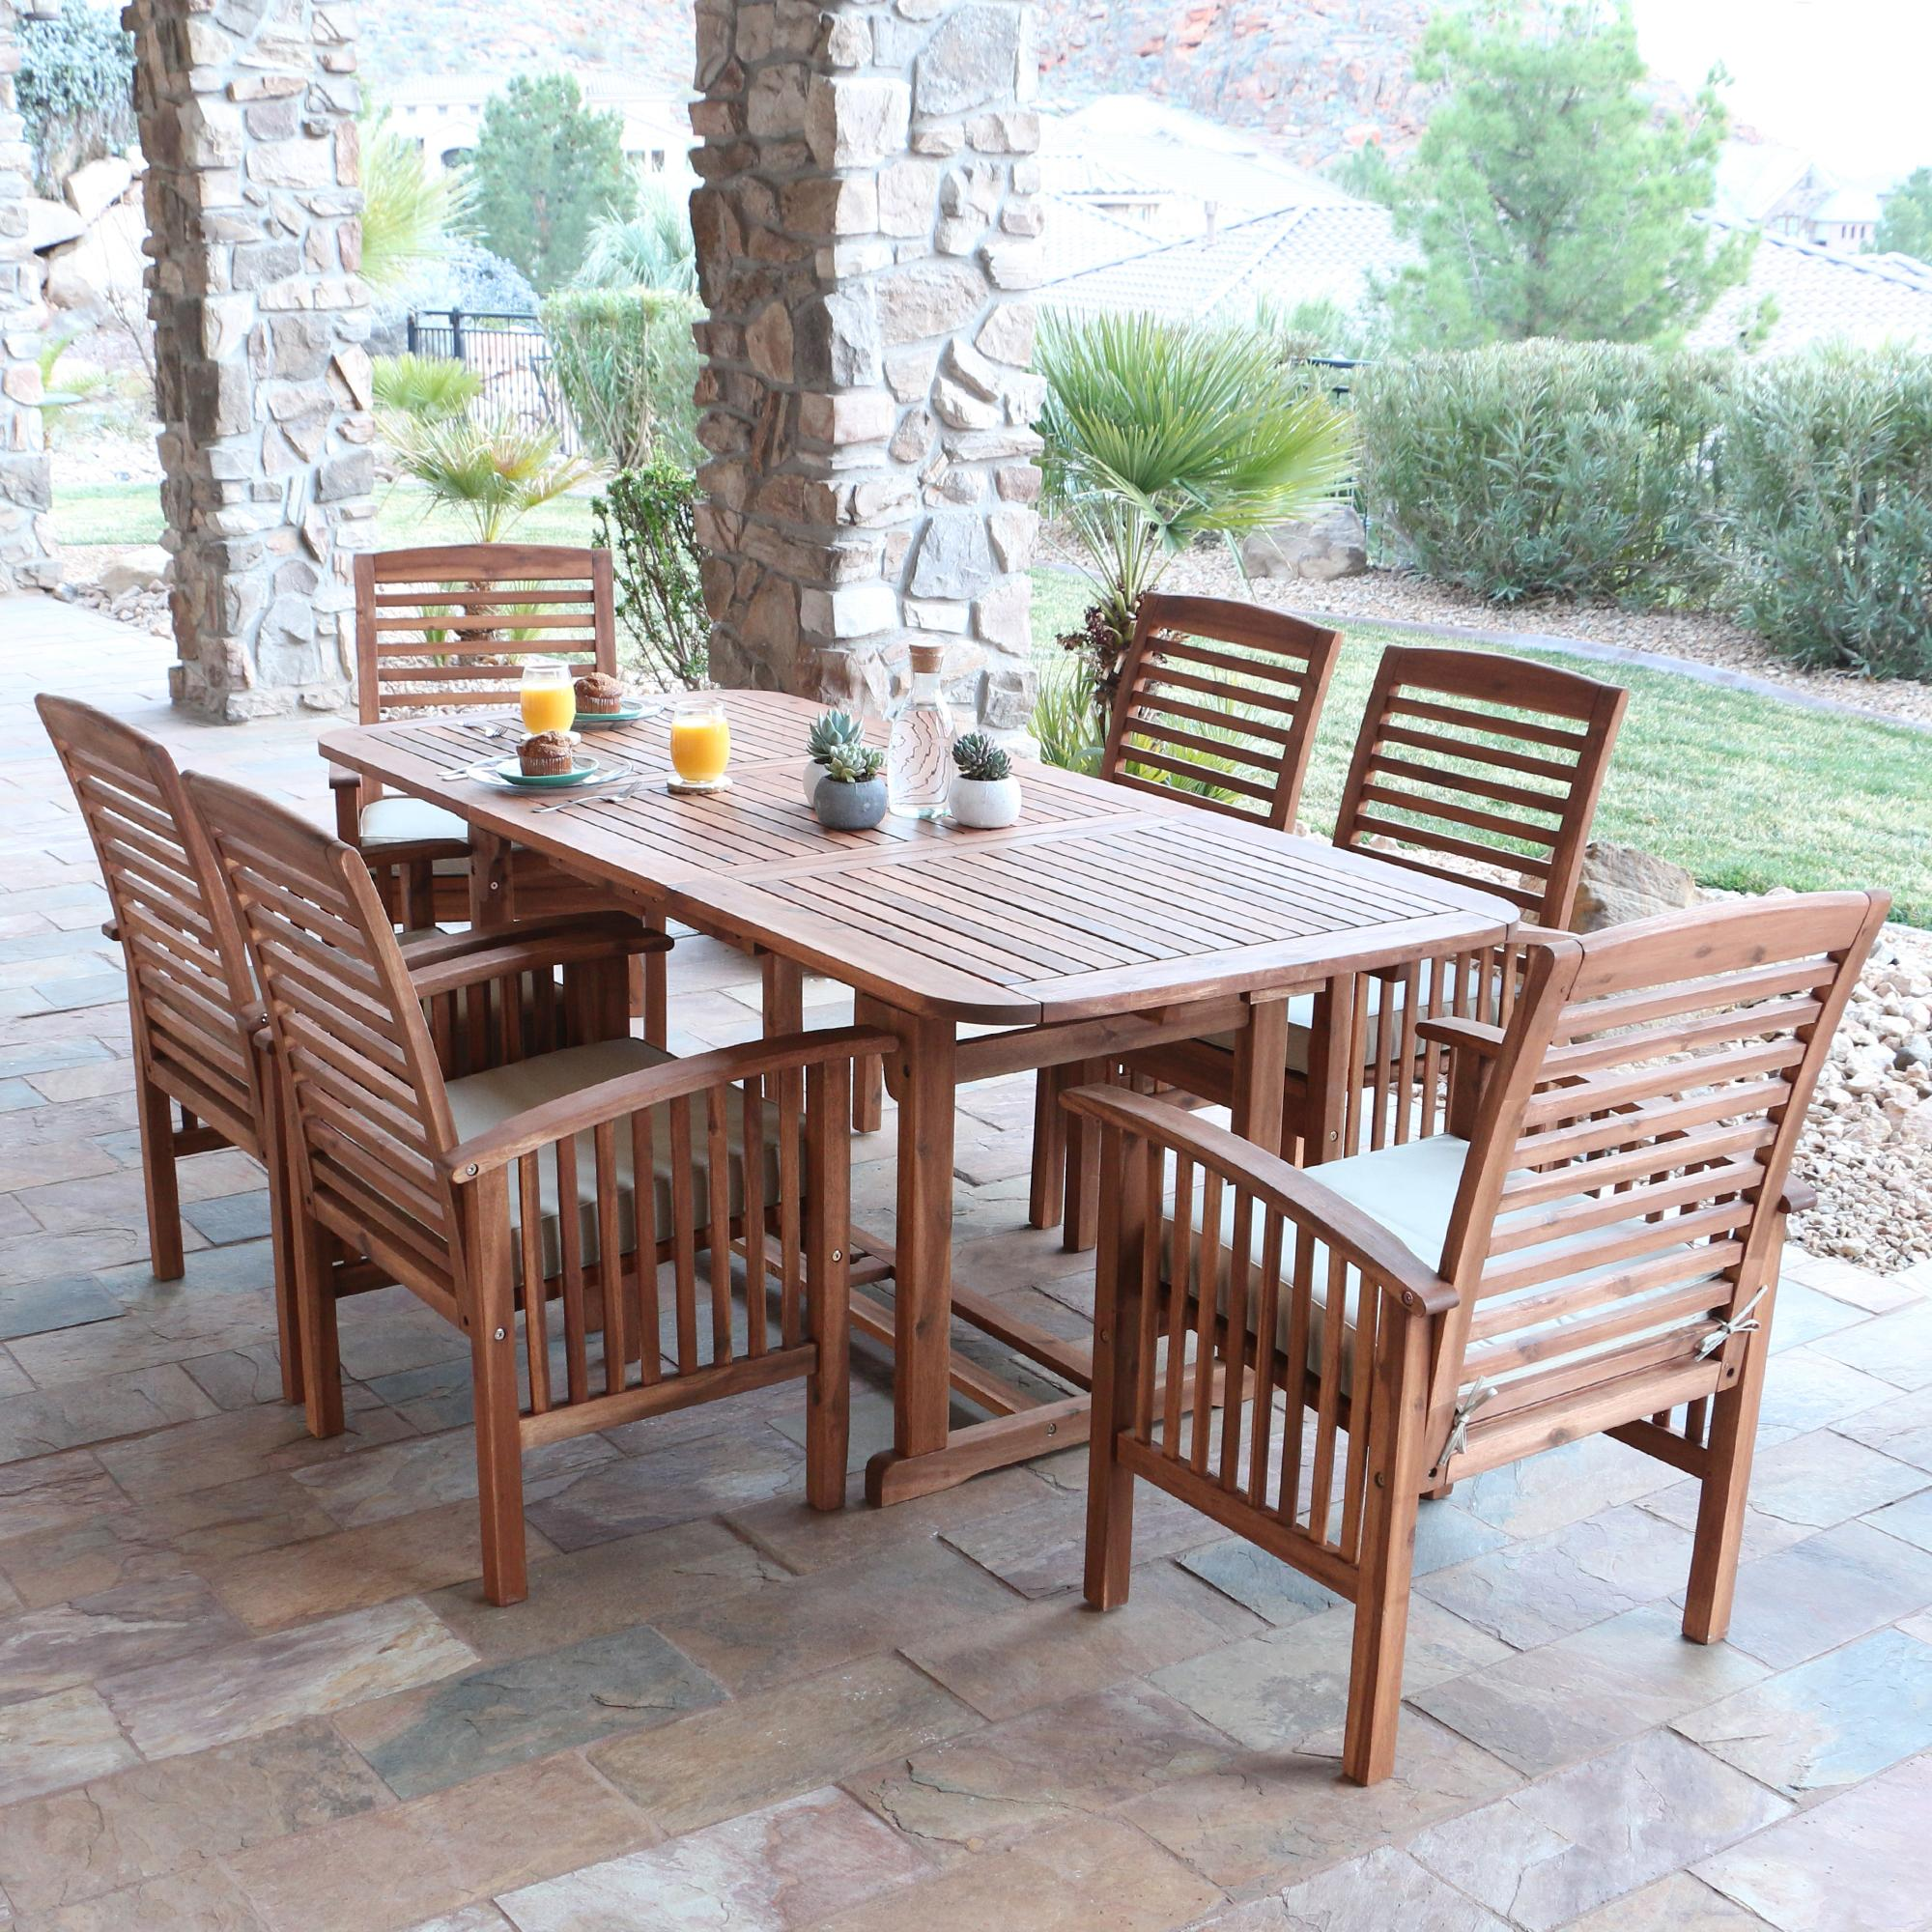 Outdoor Patio Furniture Sale Amazon: Amazon.com: WE Furniture Solid Acacia Wood 7-Piece Patio